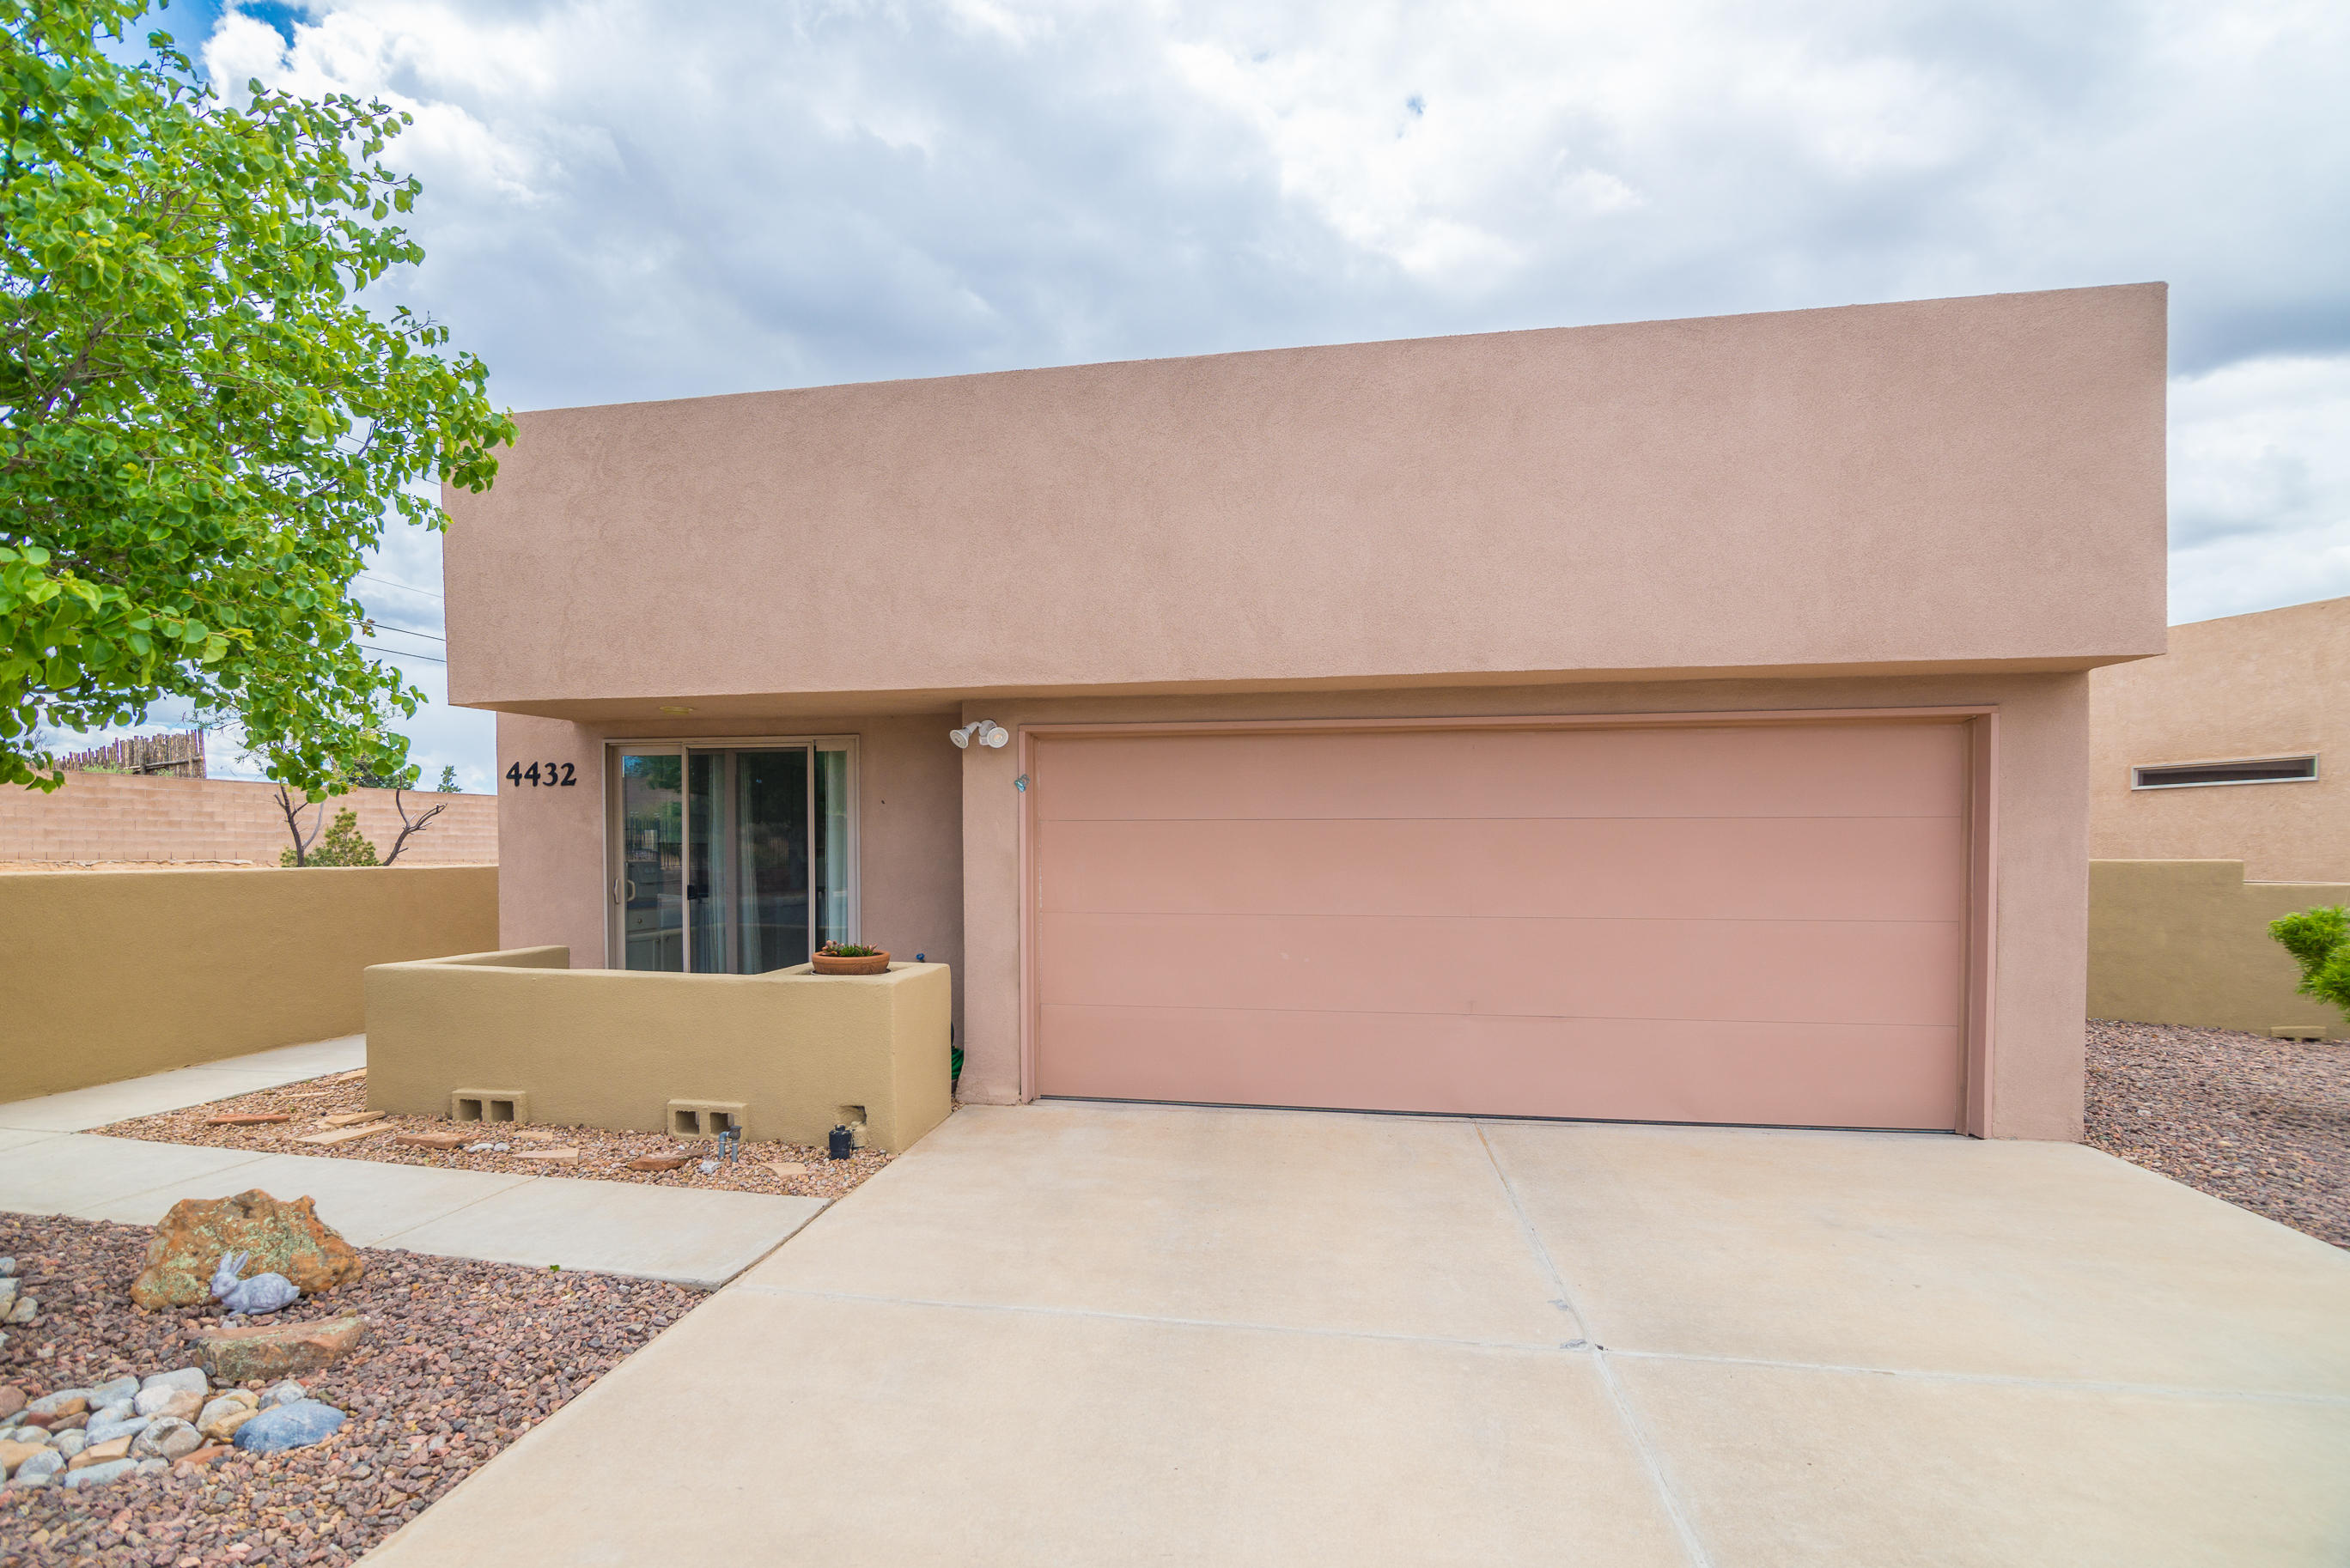 4432 SE Cave Primrose Court, Rio Rancho, New Mexico